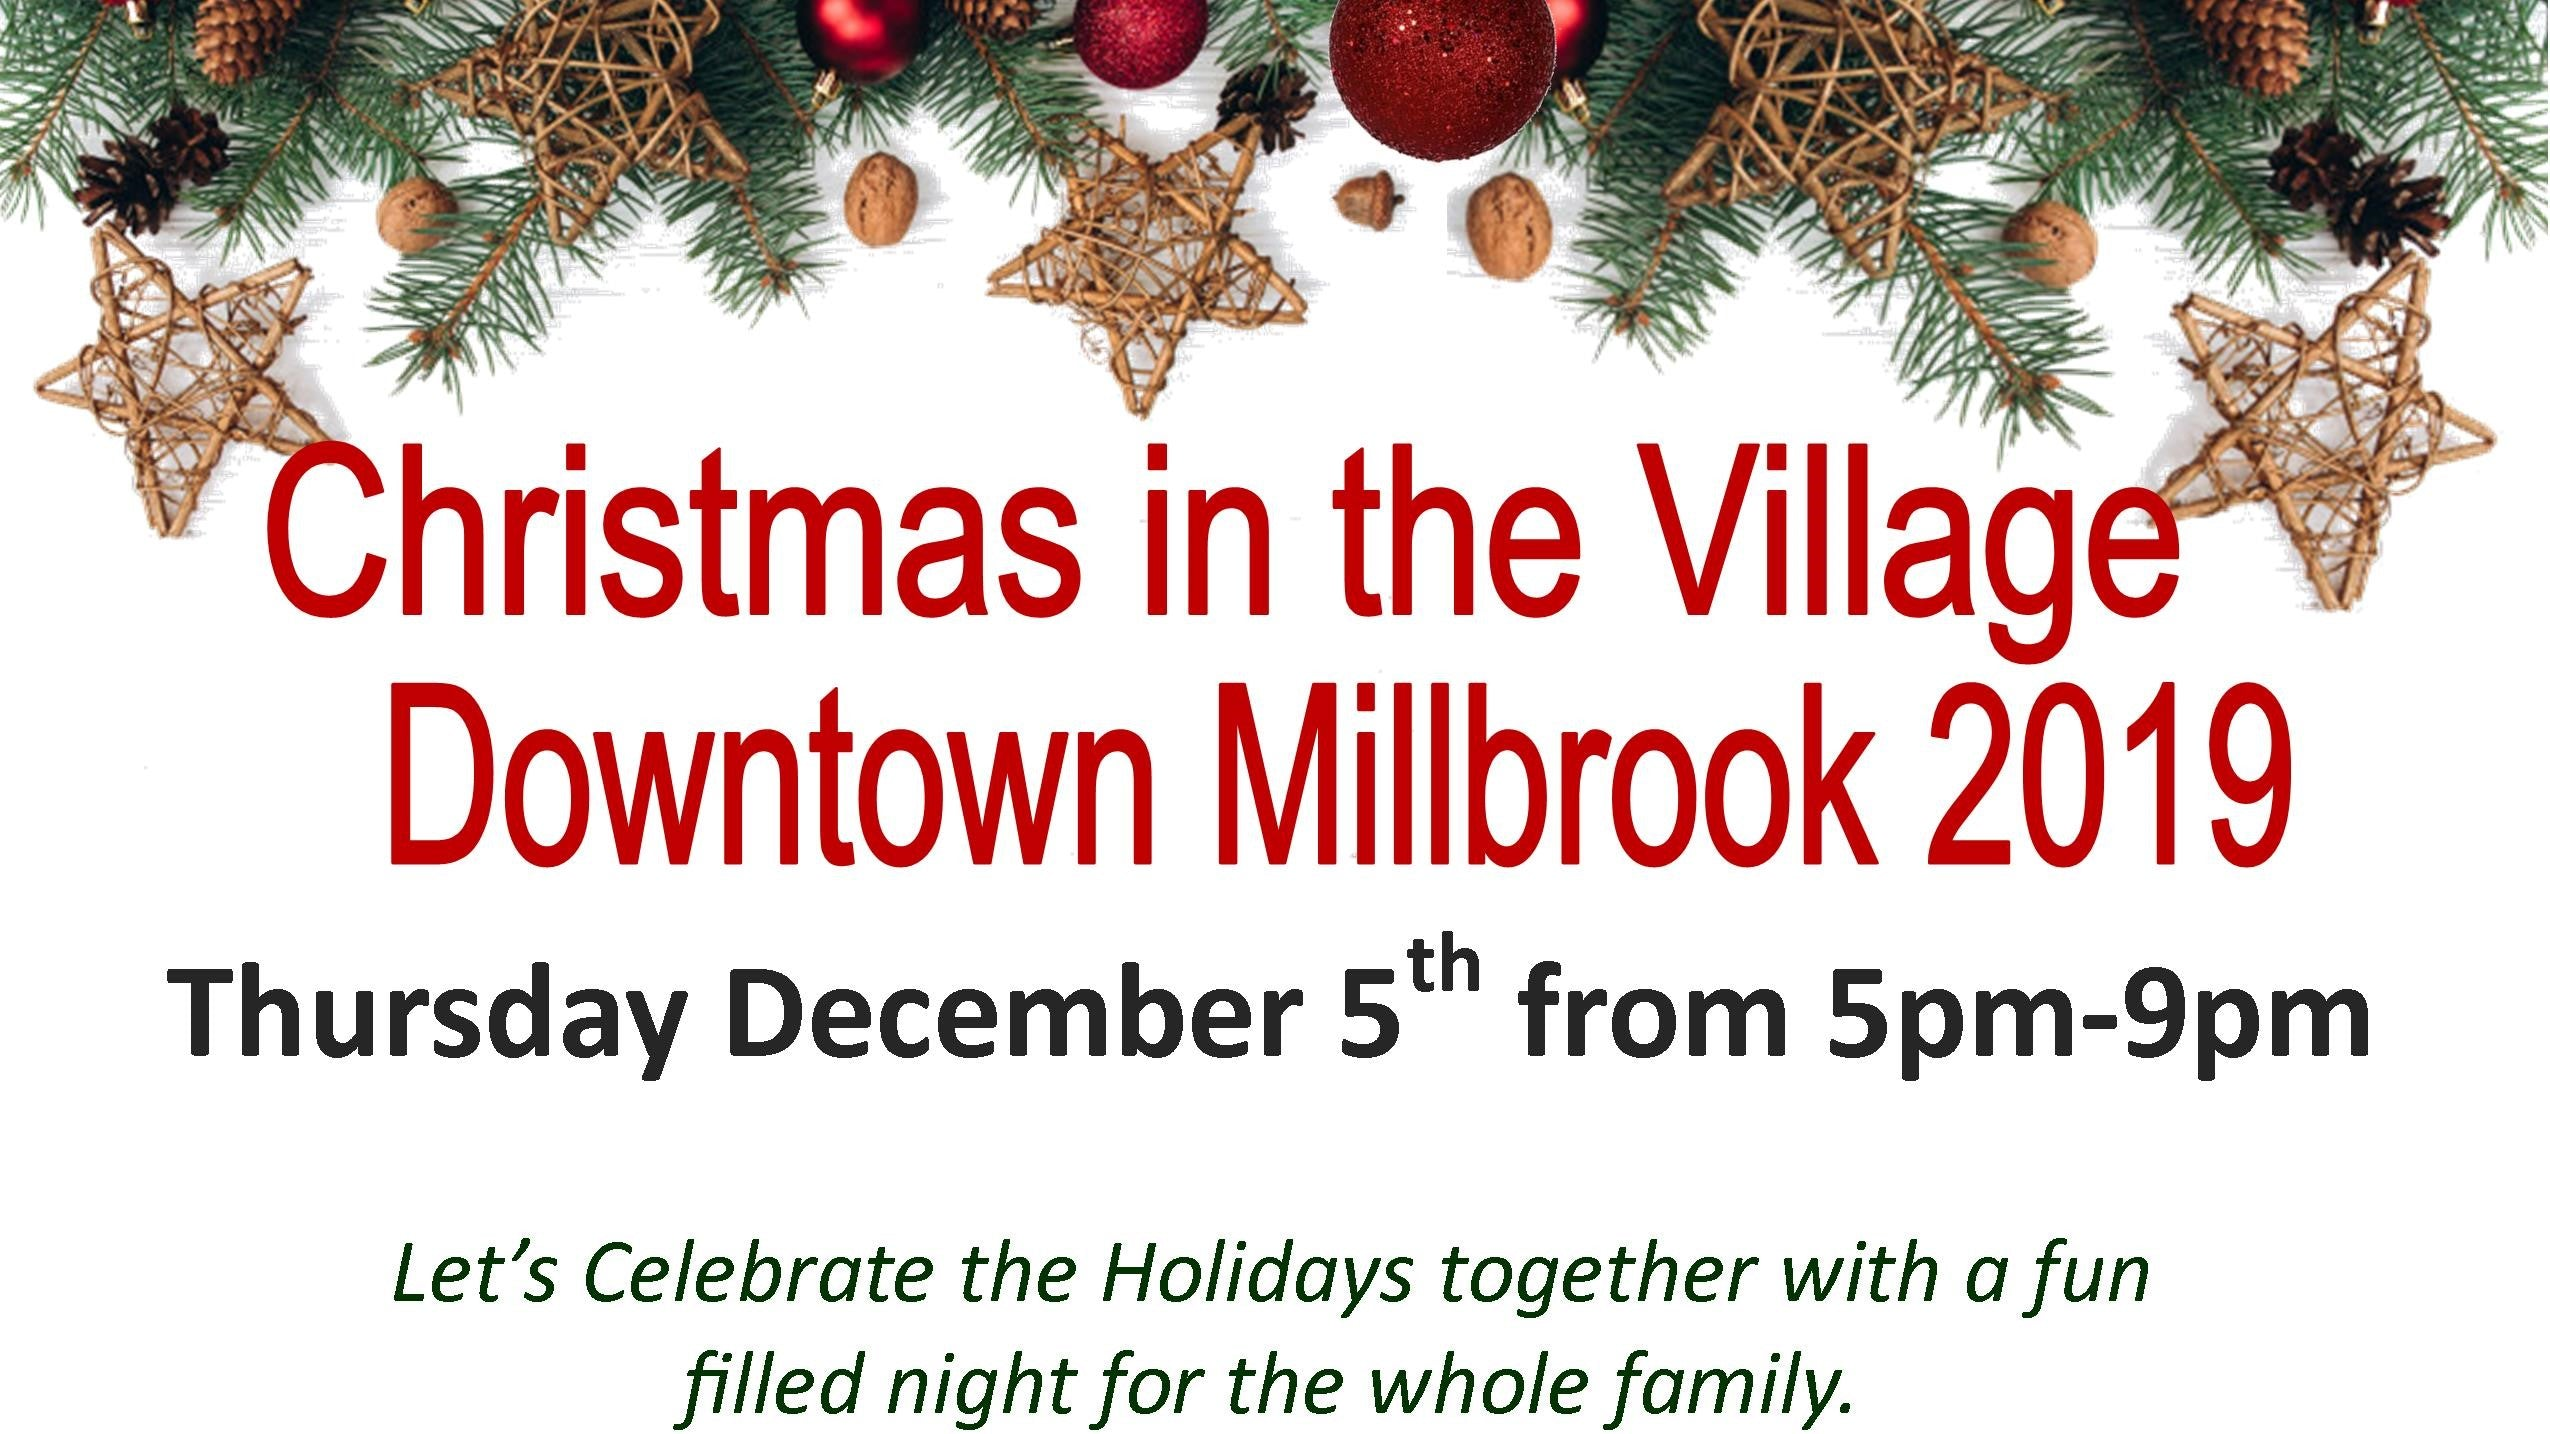 Millbrook Christmas in the Village